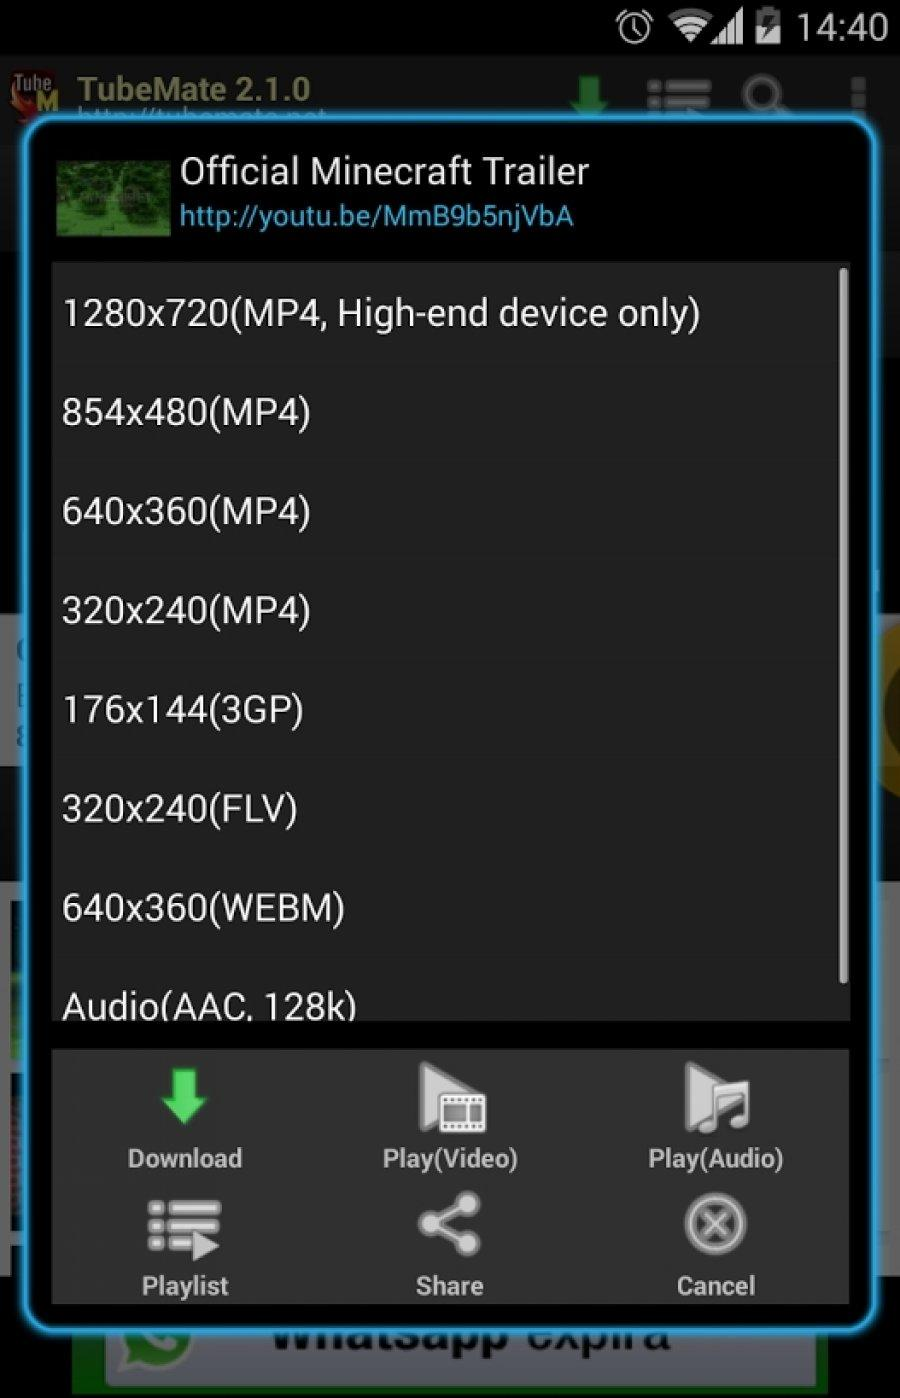 ANDROID TÉLÉCHARGER 2.3.5 TUBEMATE